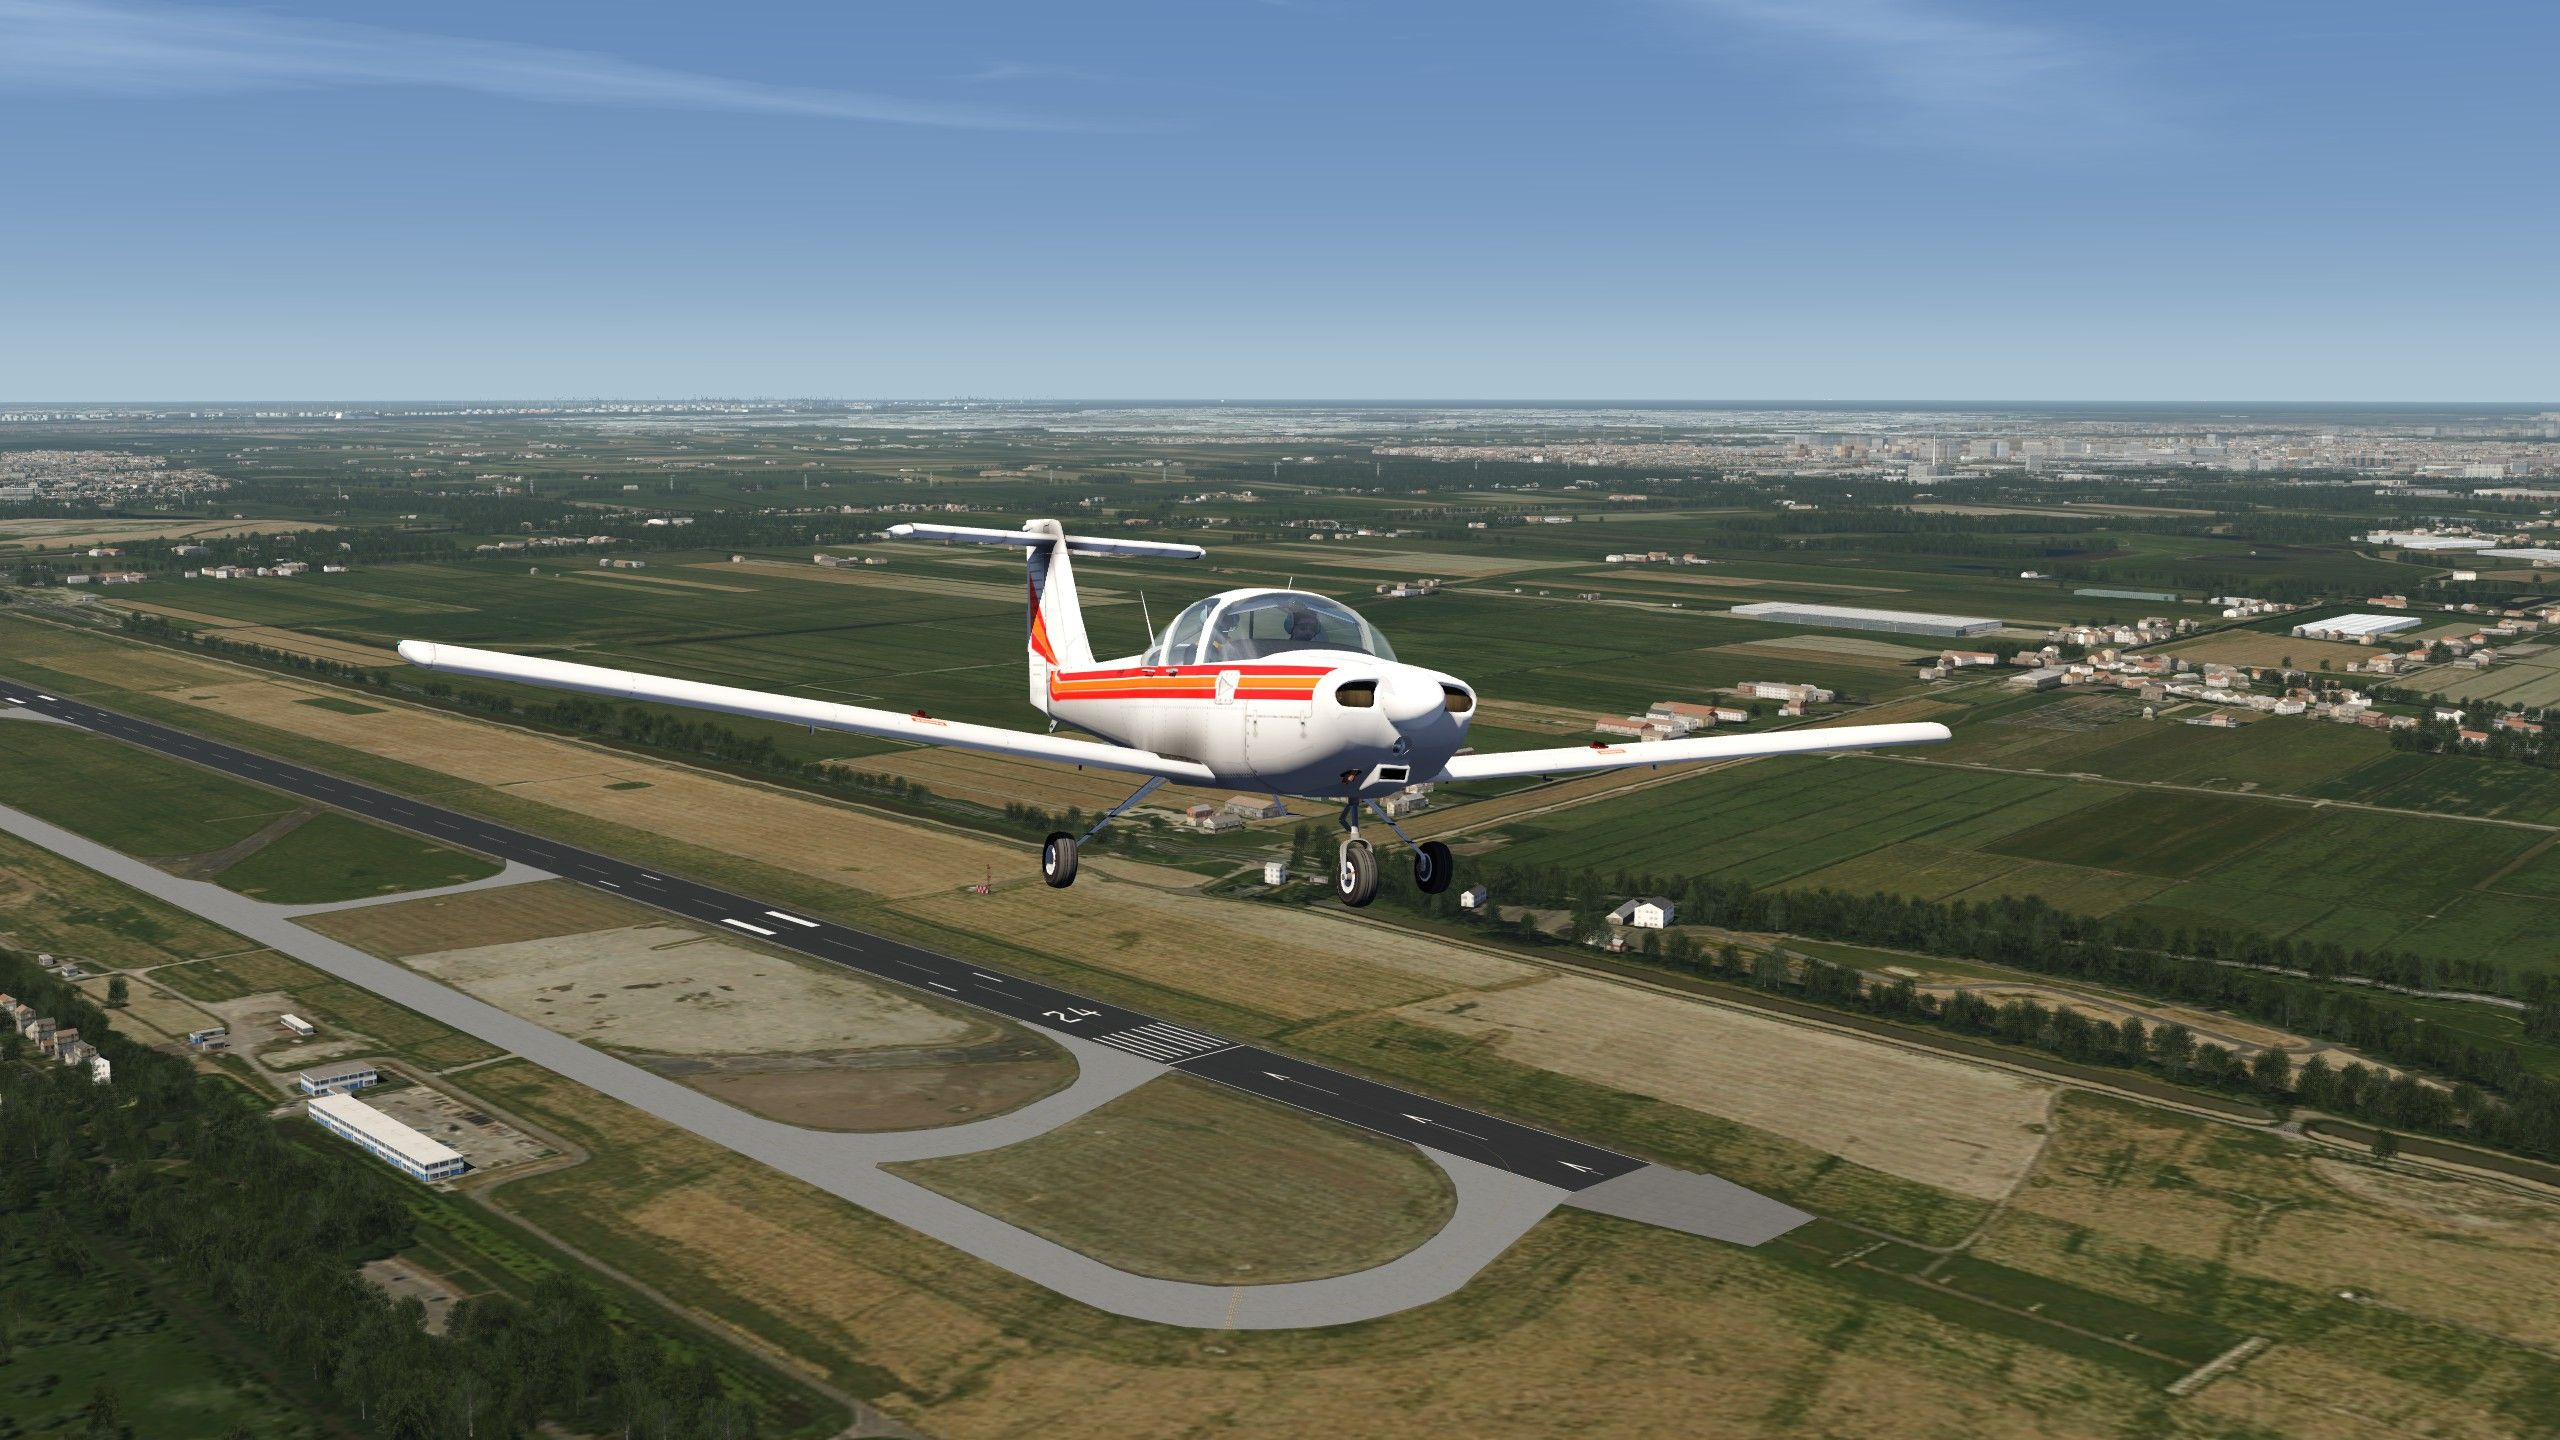 Lots of beta planes released for Aerofly FS2 - IPACS AeroFly FS2